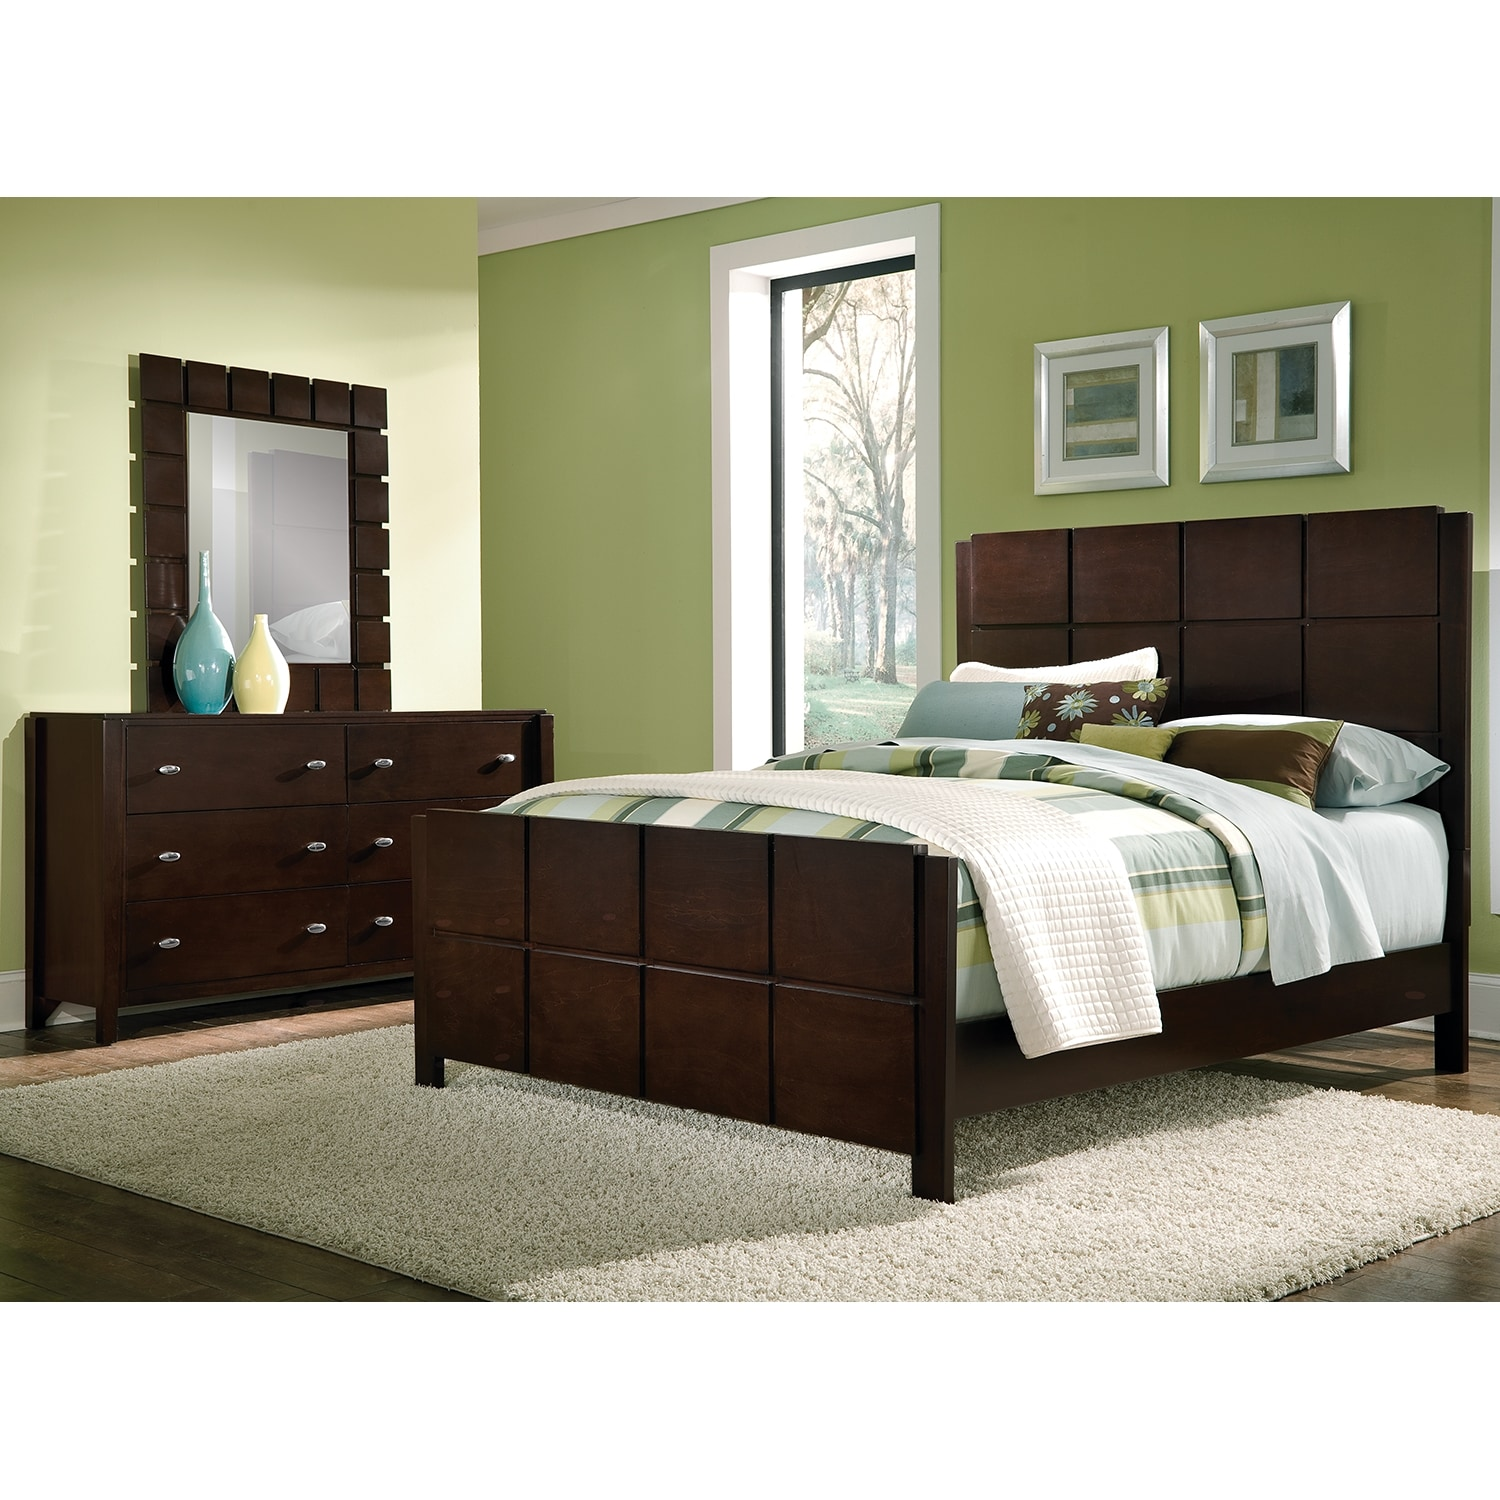 Mosaic 5 piece king bedroom set dark brown american for Furniture bedroom furniture